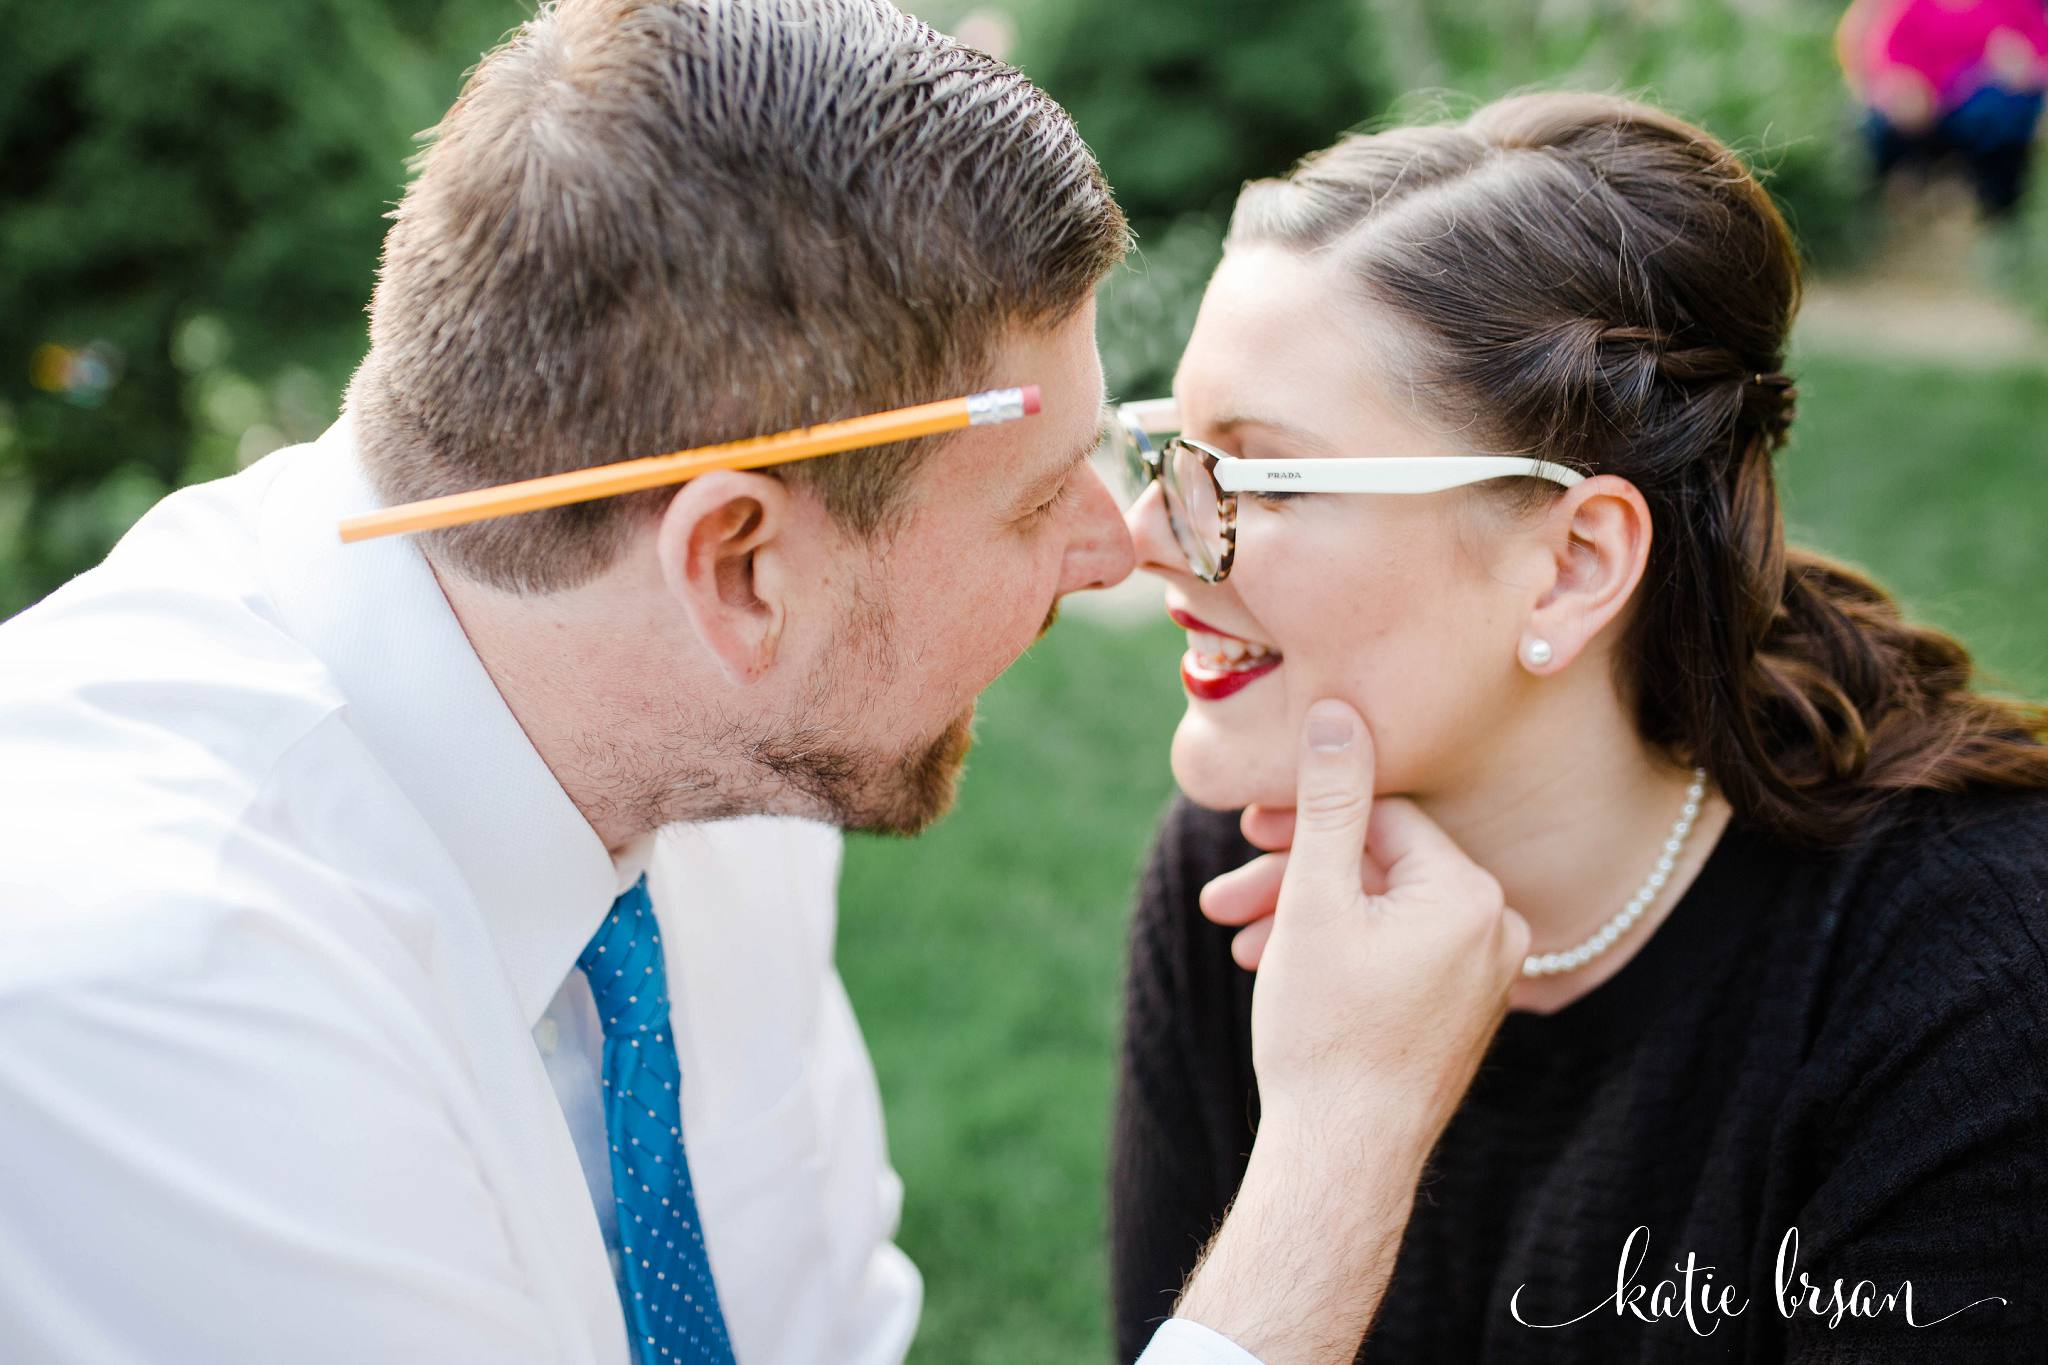 KatieBrsan-HomerGlen-NewLenox-EngagementSession-HadleyValley-TeacherEngagementSession-ChicagoWeddingPhotographer_0579.jpg